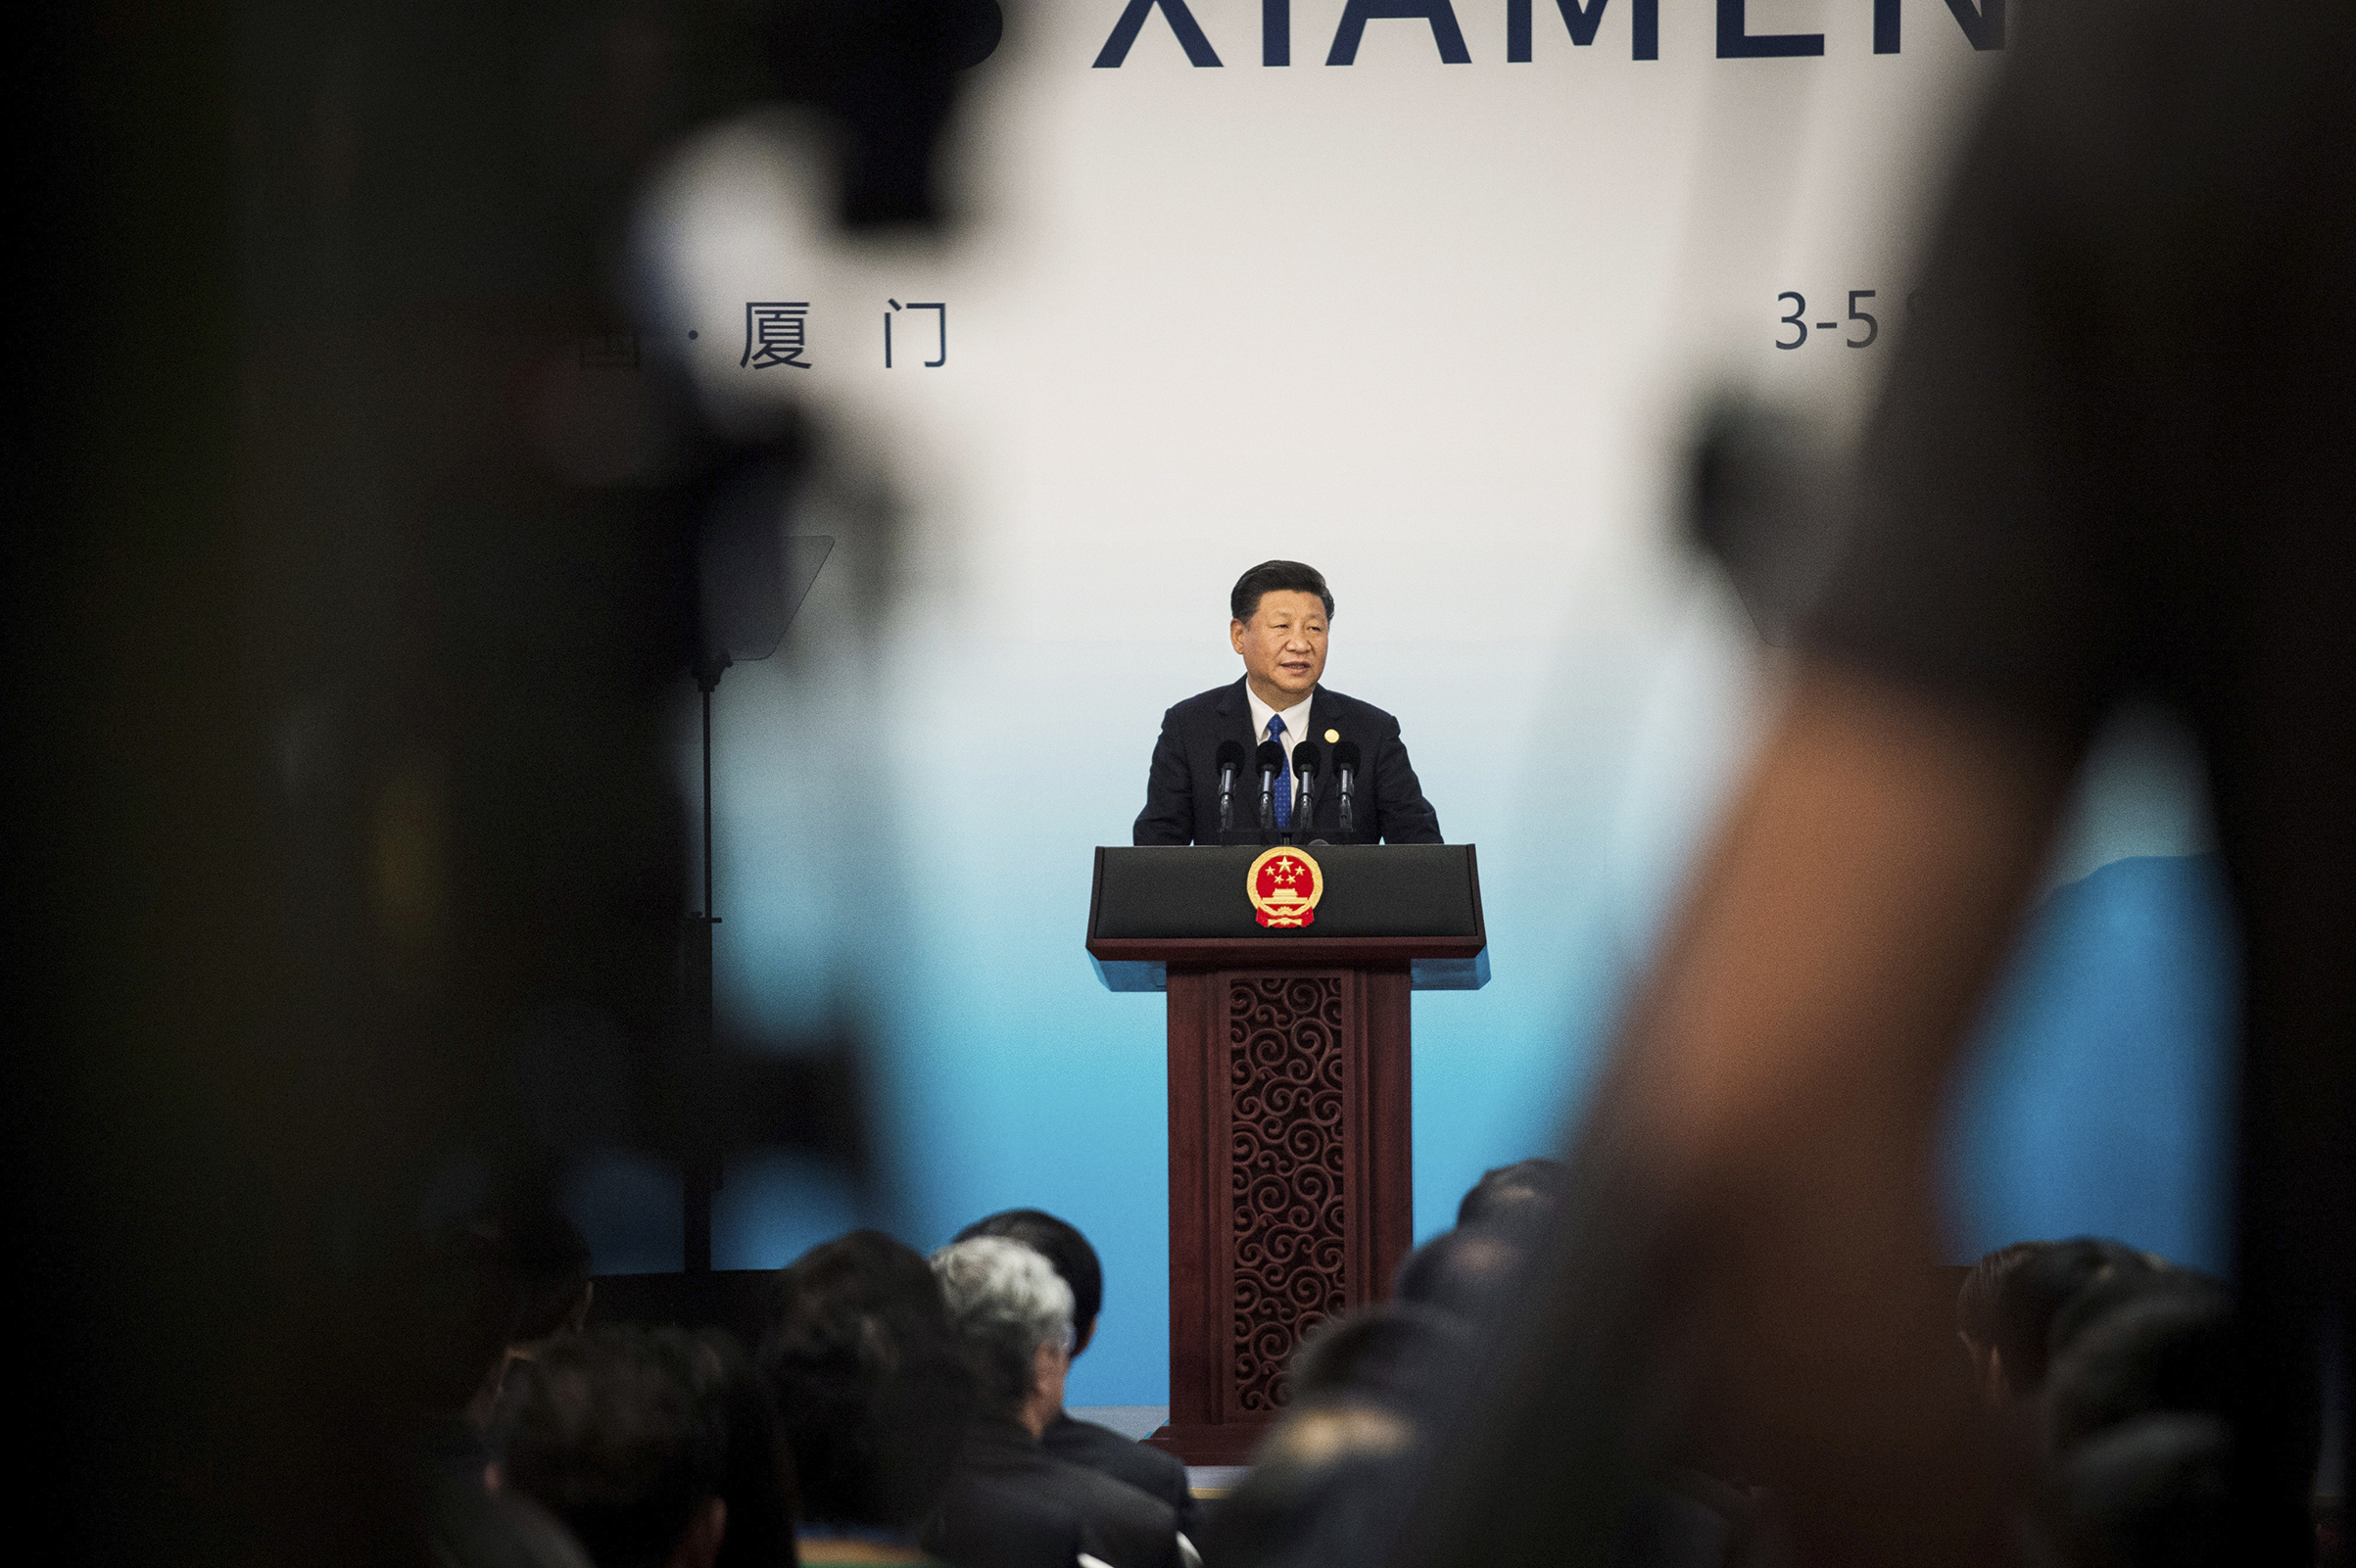 President Xi's consolidation of power is a recipe for paralysis